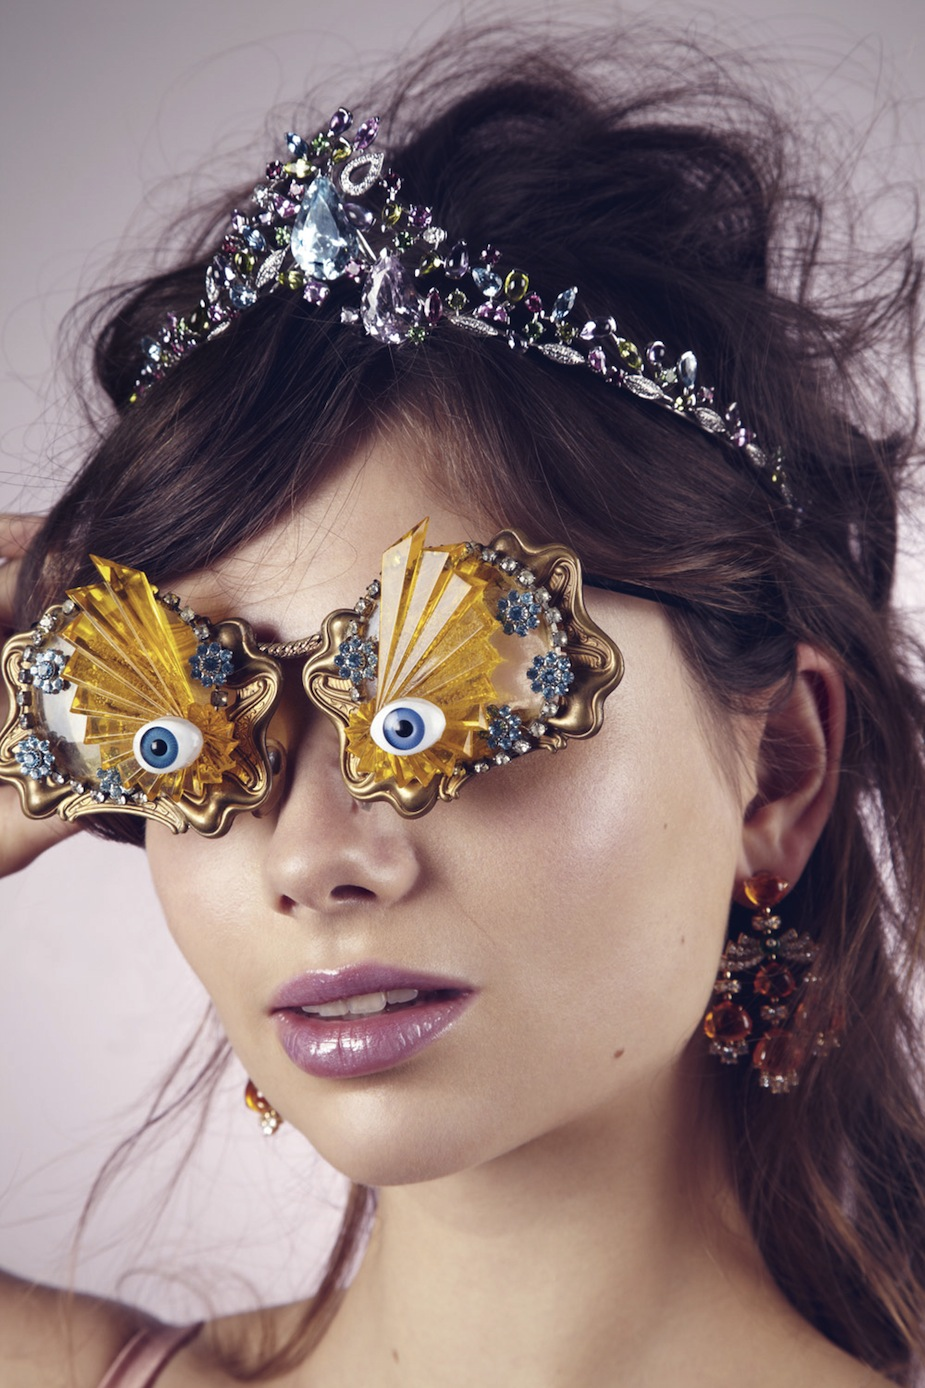 Merle Bergers by Olivia Da Costa (I Always Dreamed Of Being A Princess - Please! #12 Spring 2012) 8.jpg